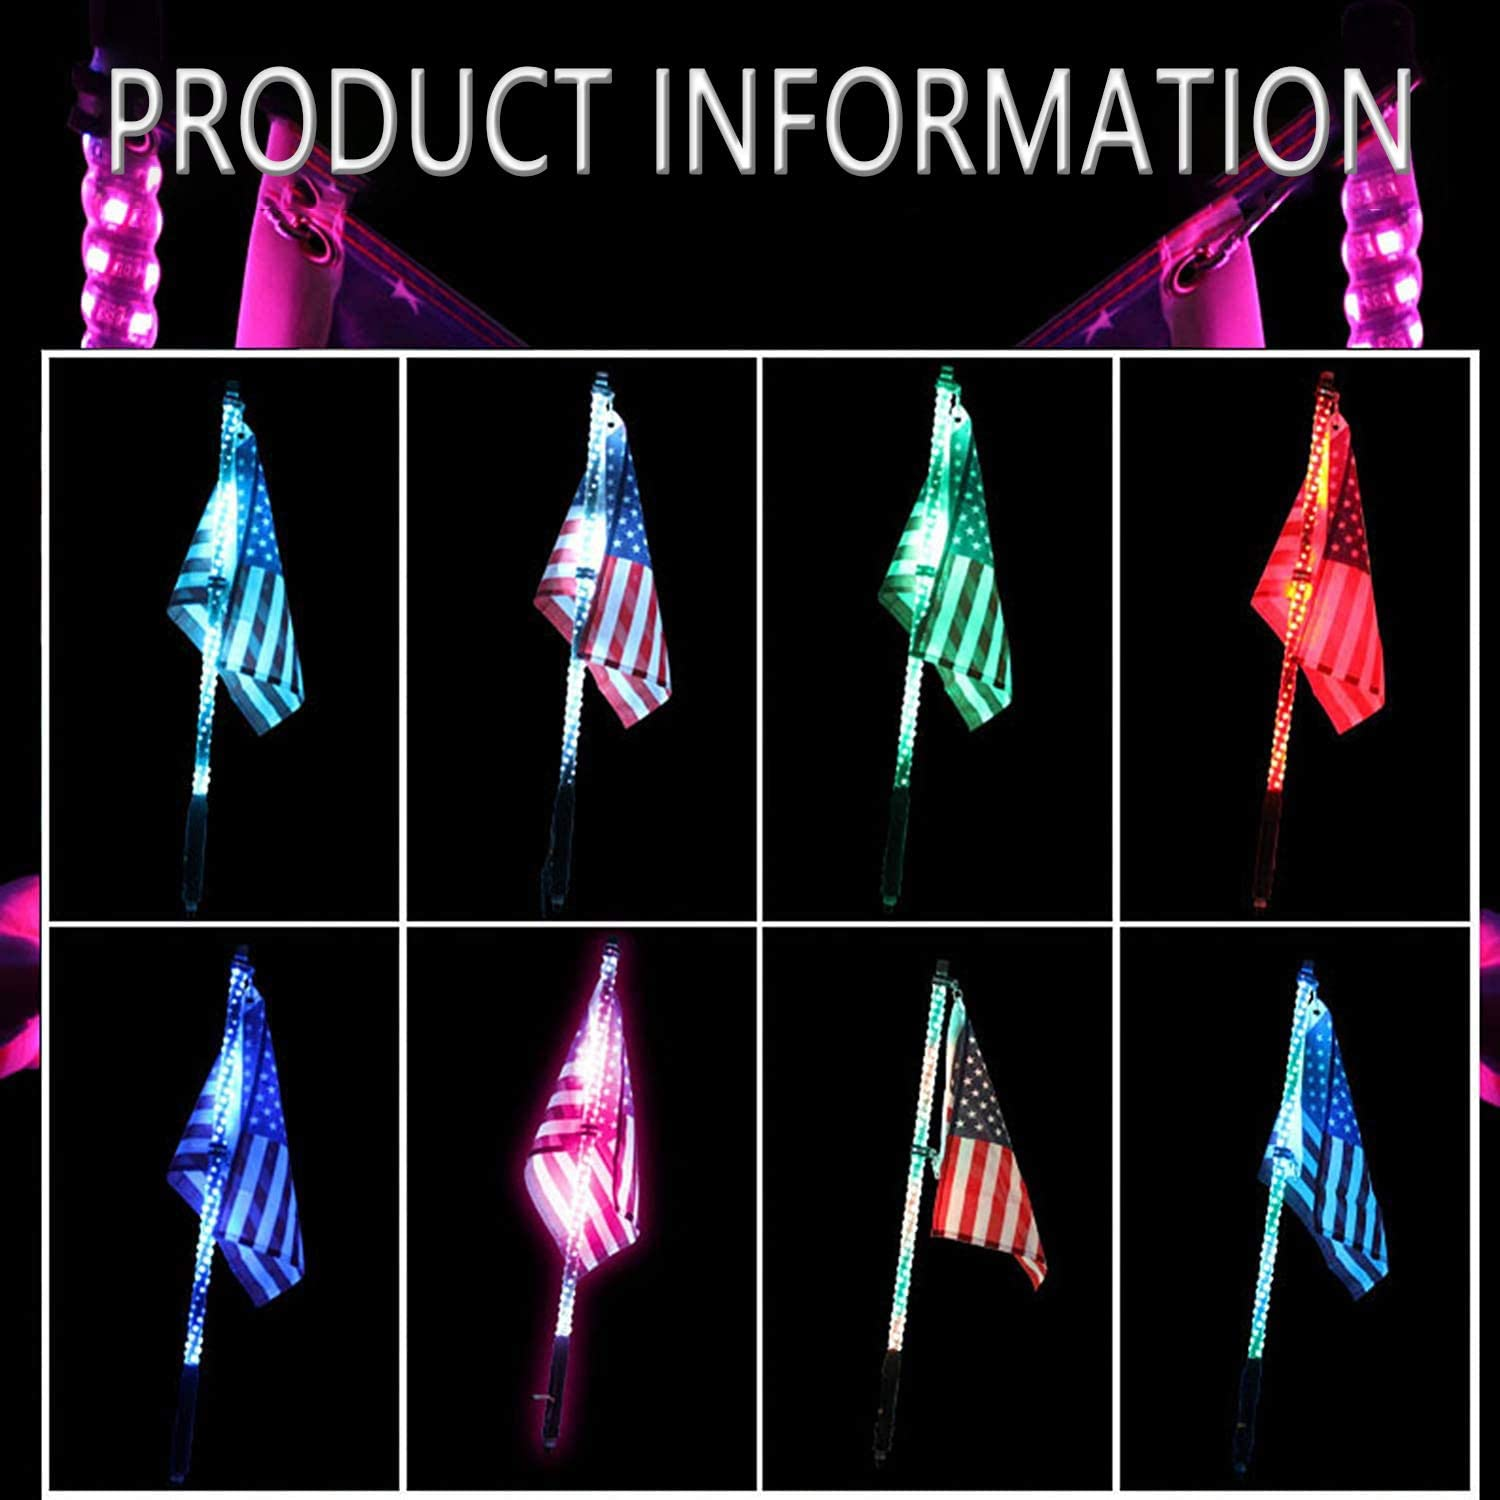 DIBMS 4ft LED Whip Lights with Flag Pole Remote Control 360/° Spiral LED RGB Chase Dancing Light Offroad Warning Lighted Antenna Whips for UTV ATV Off-Road Truck Sand Buggy Dune RZR Can-am Boat 2PCS